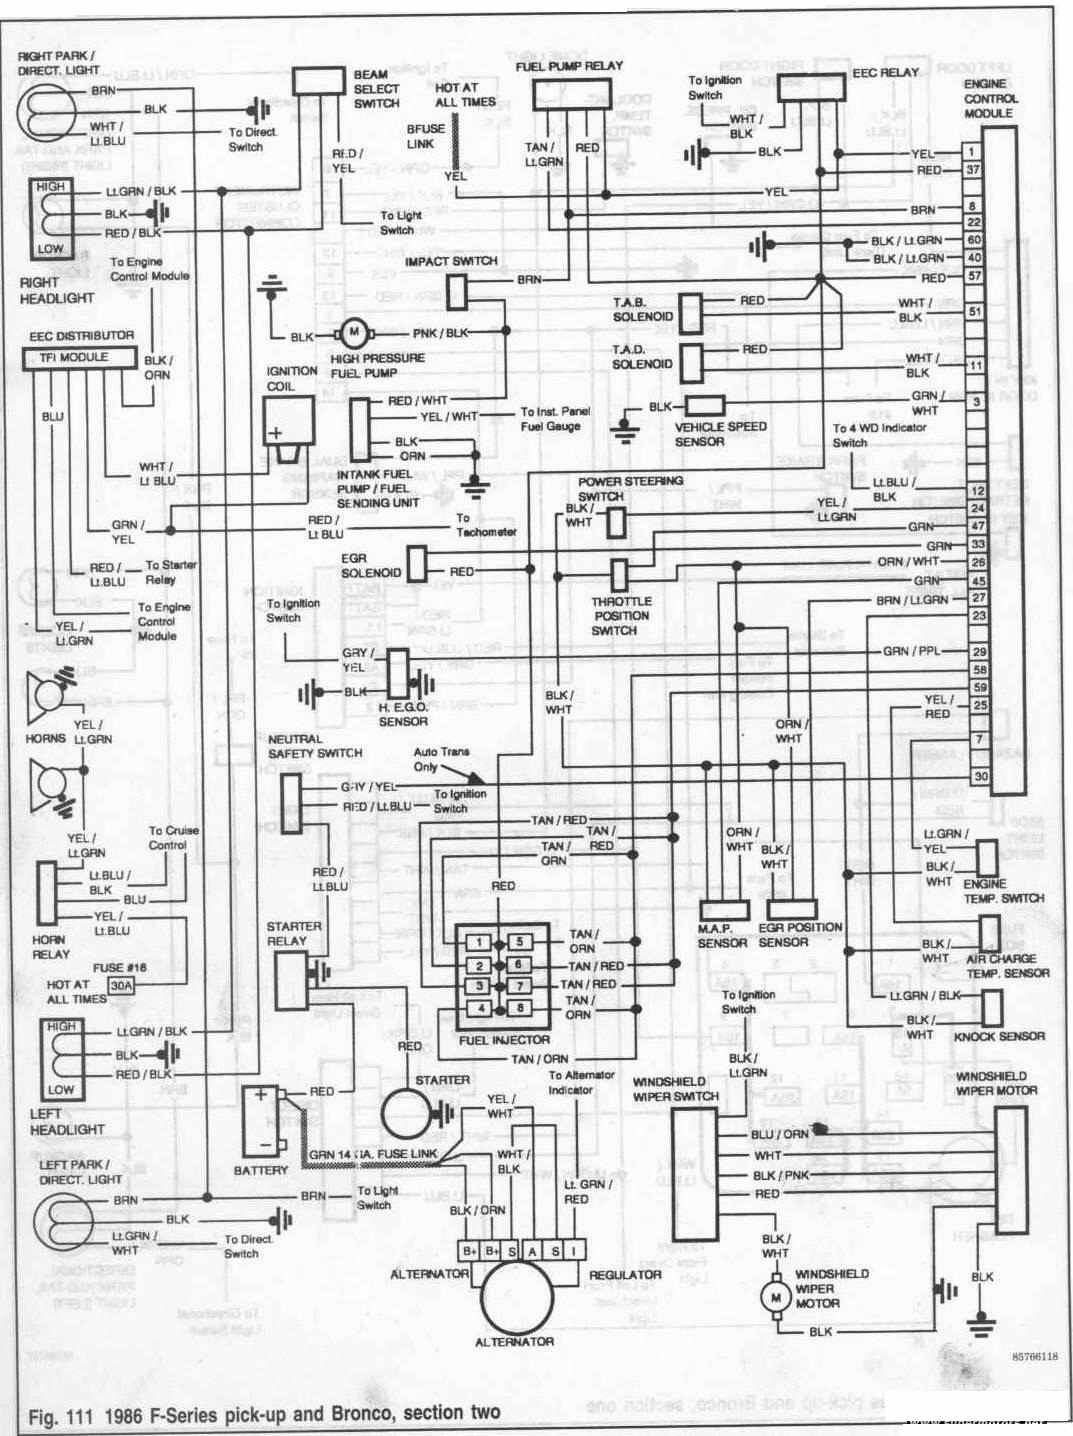 Ford F Series Wiring Diagrams 96 Bronco Headlight Switch Diagram And Pickup 1986 Engine Control Module 1996